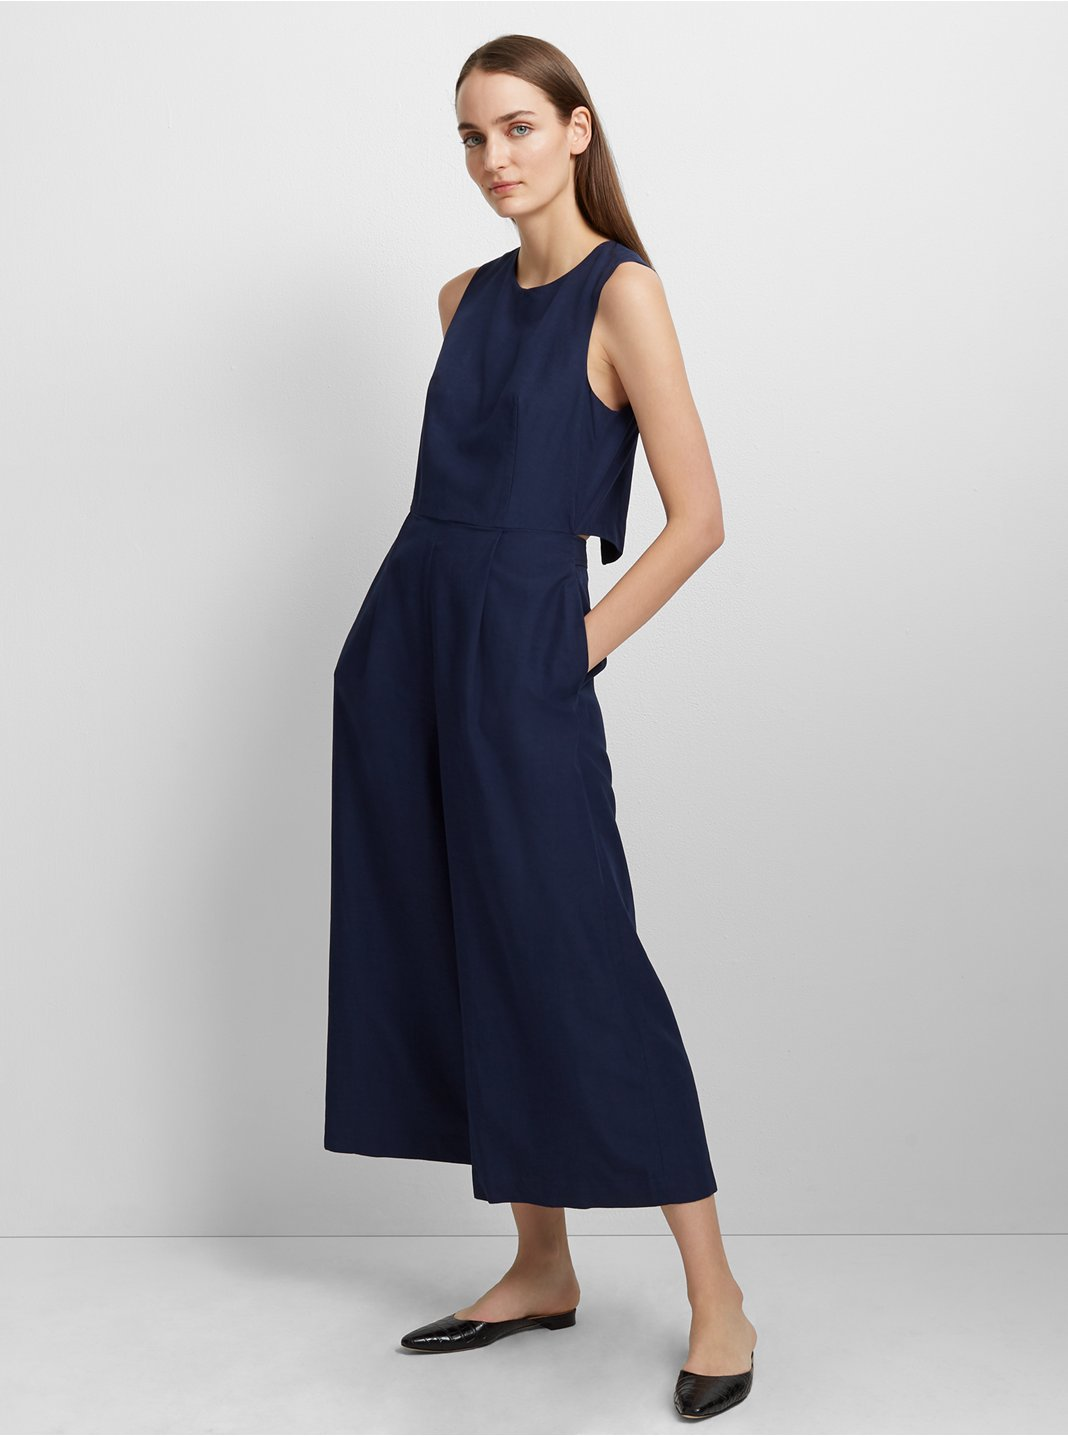 461196f96115 Womens Jumpsuits and Rompers | Club Monaco